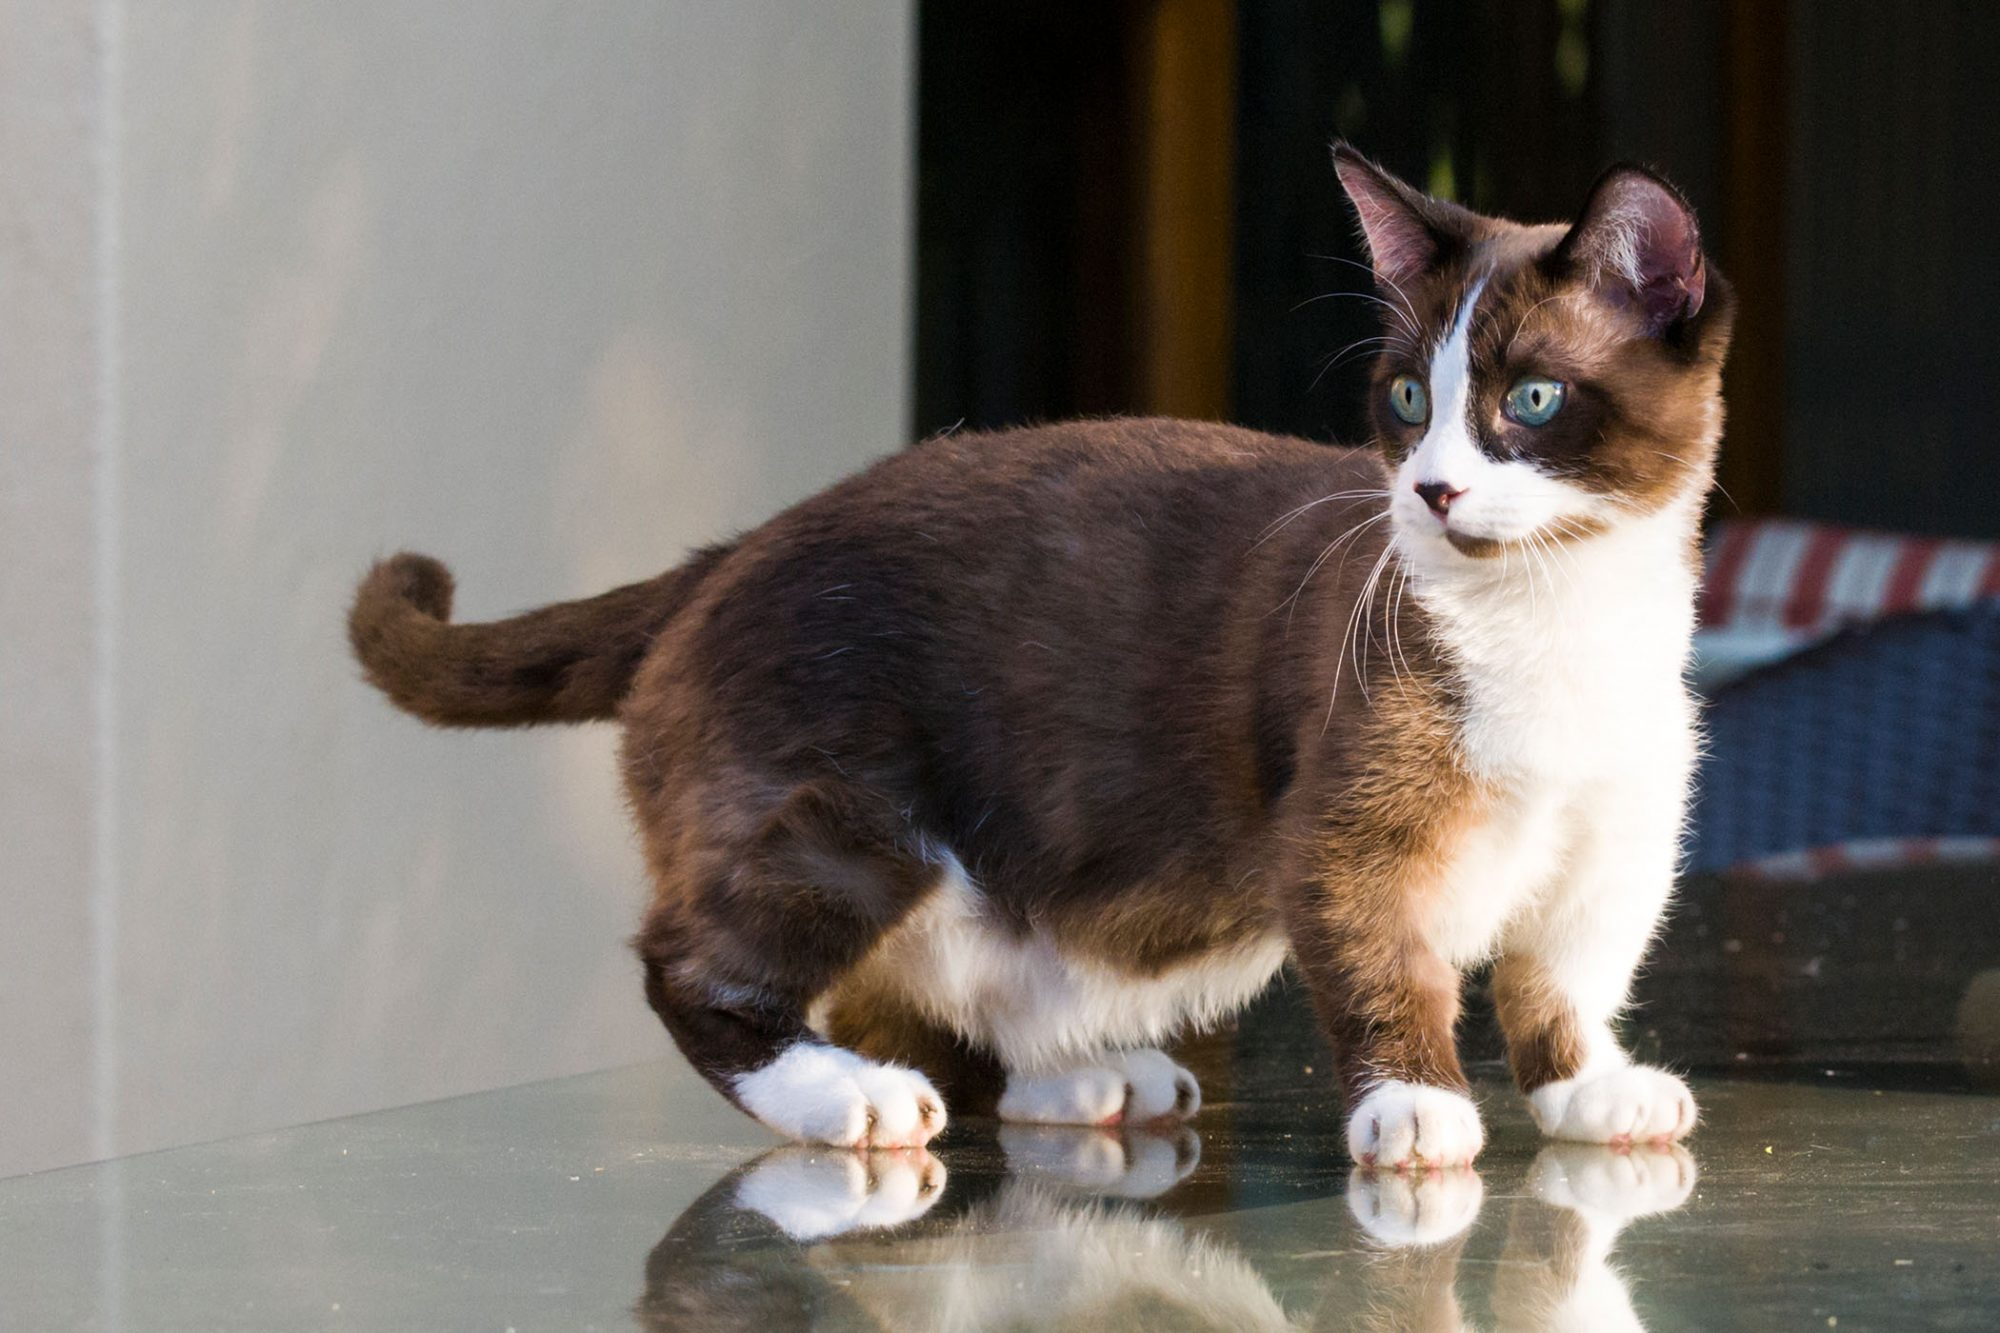 brown-and-white munchkin cat